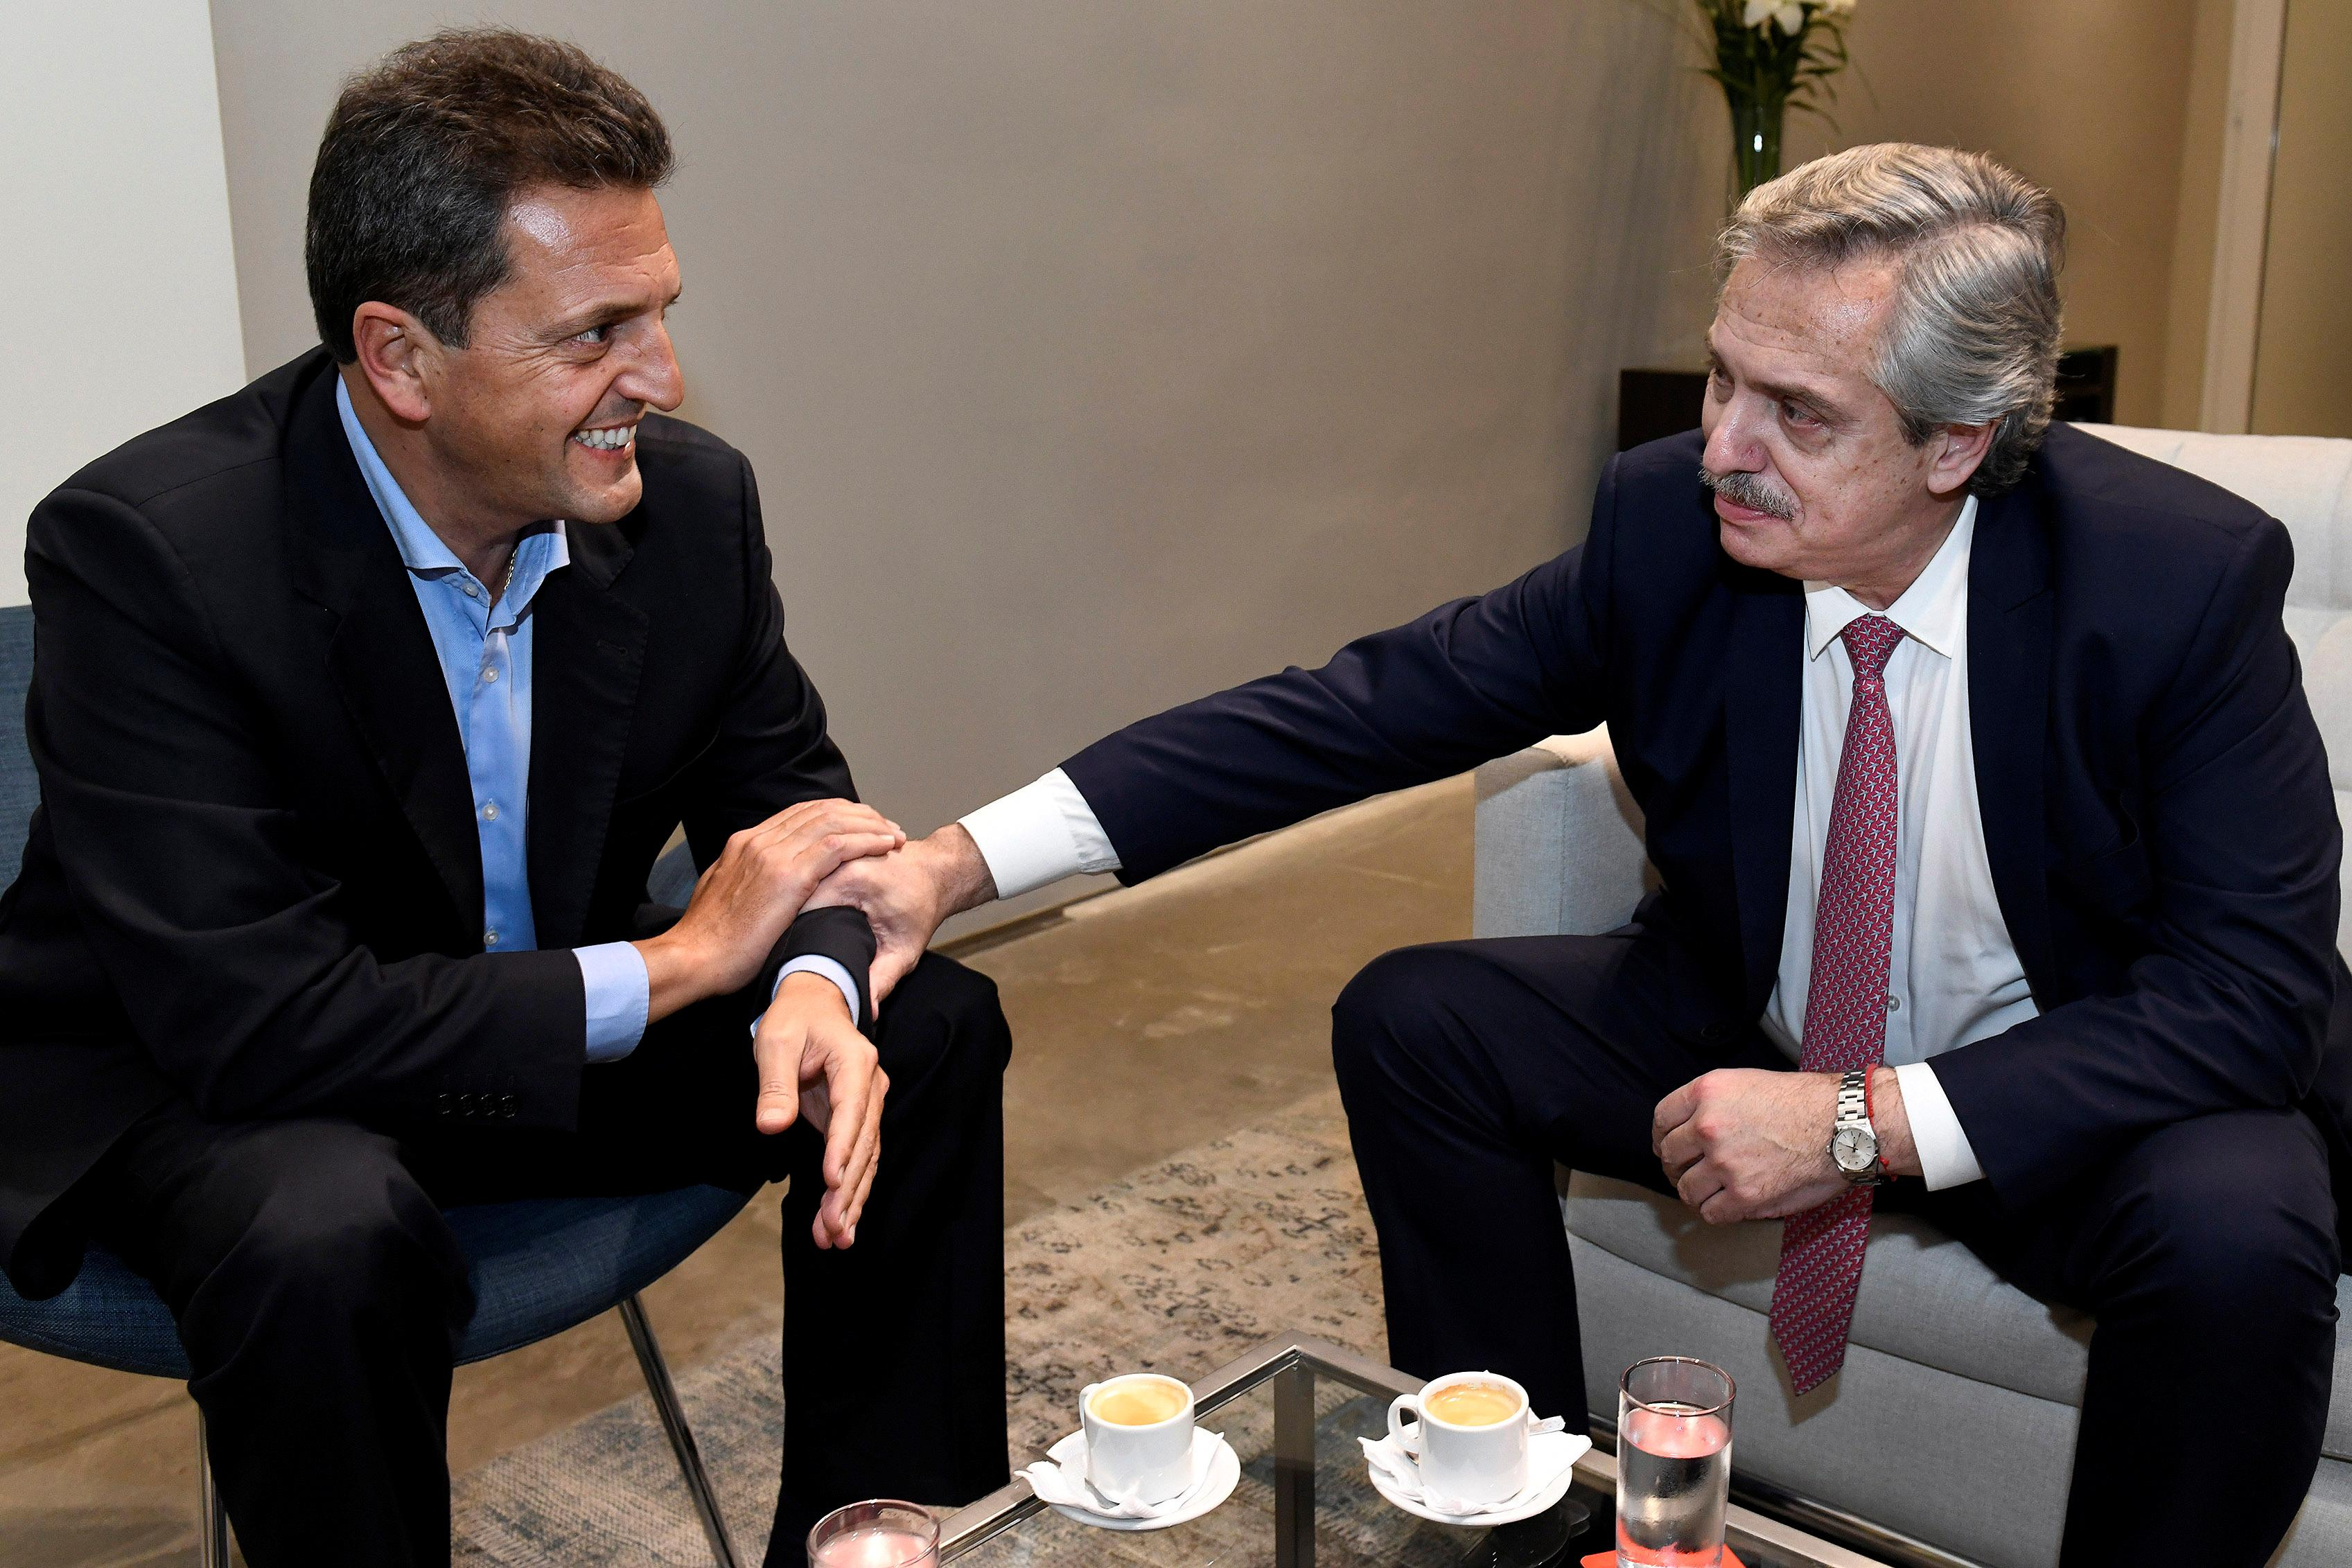 Macri's key rivals in Argentina presidential election strike alliance with centrist